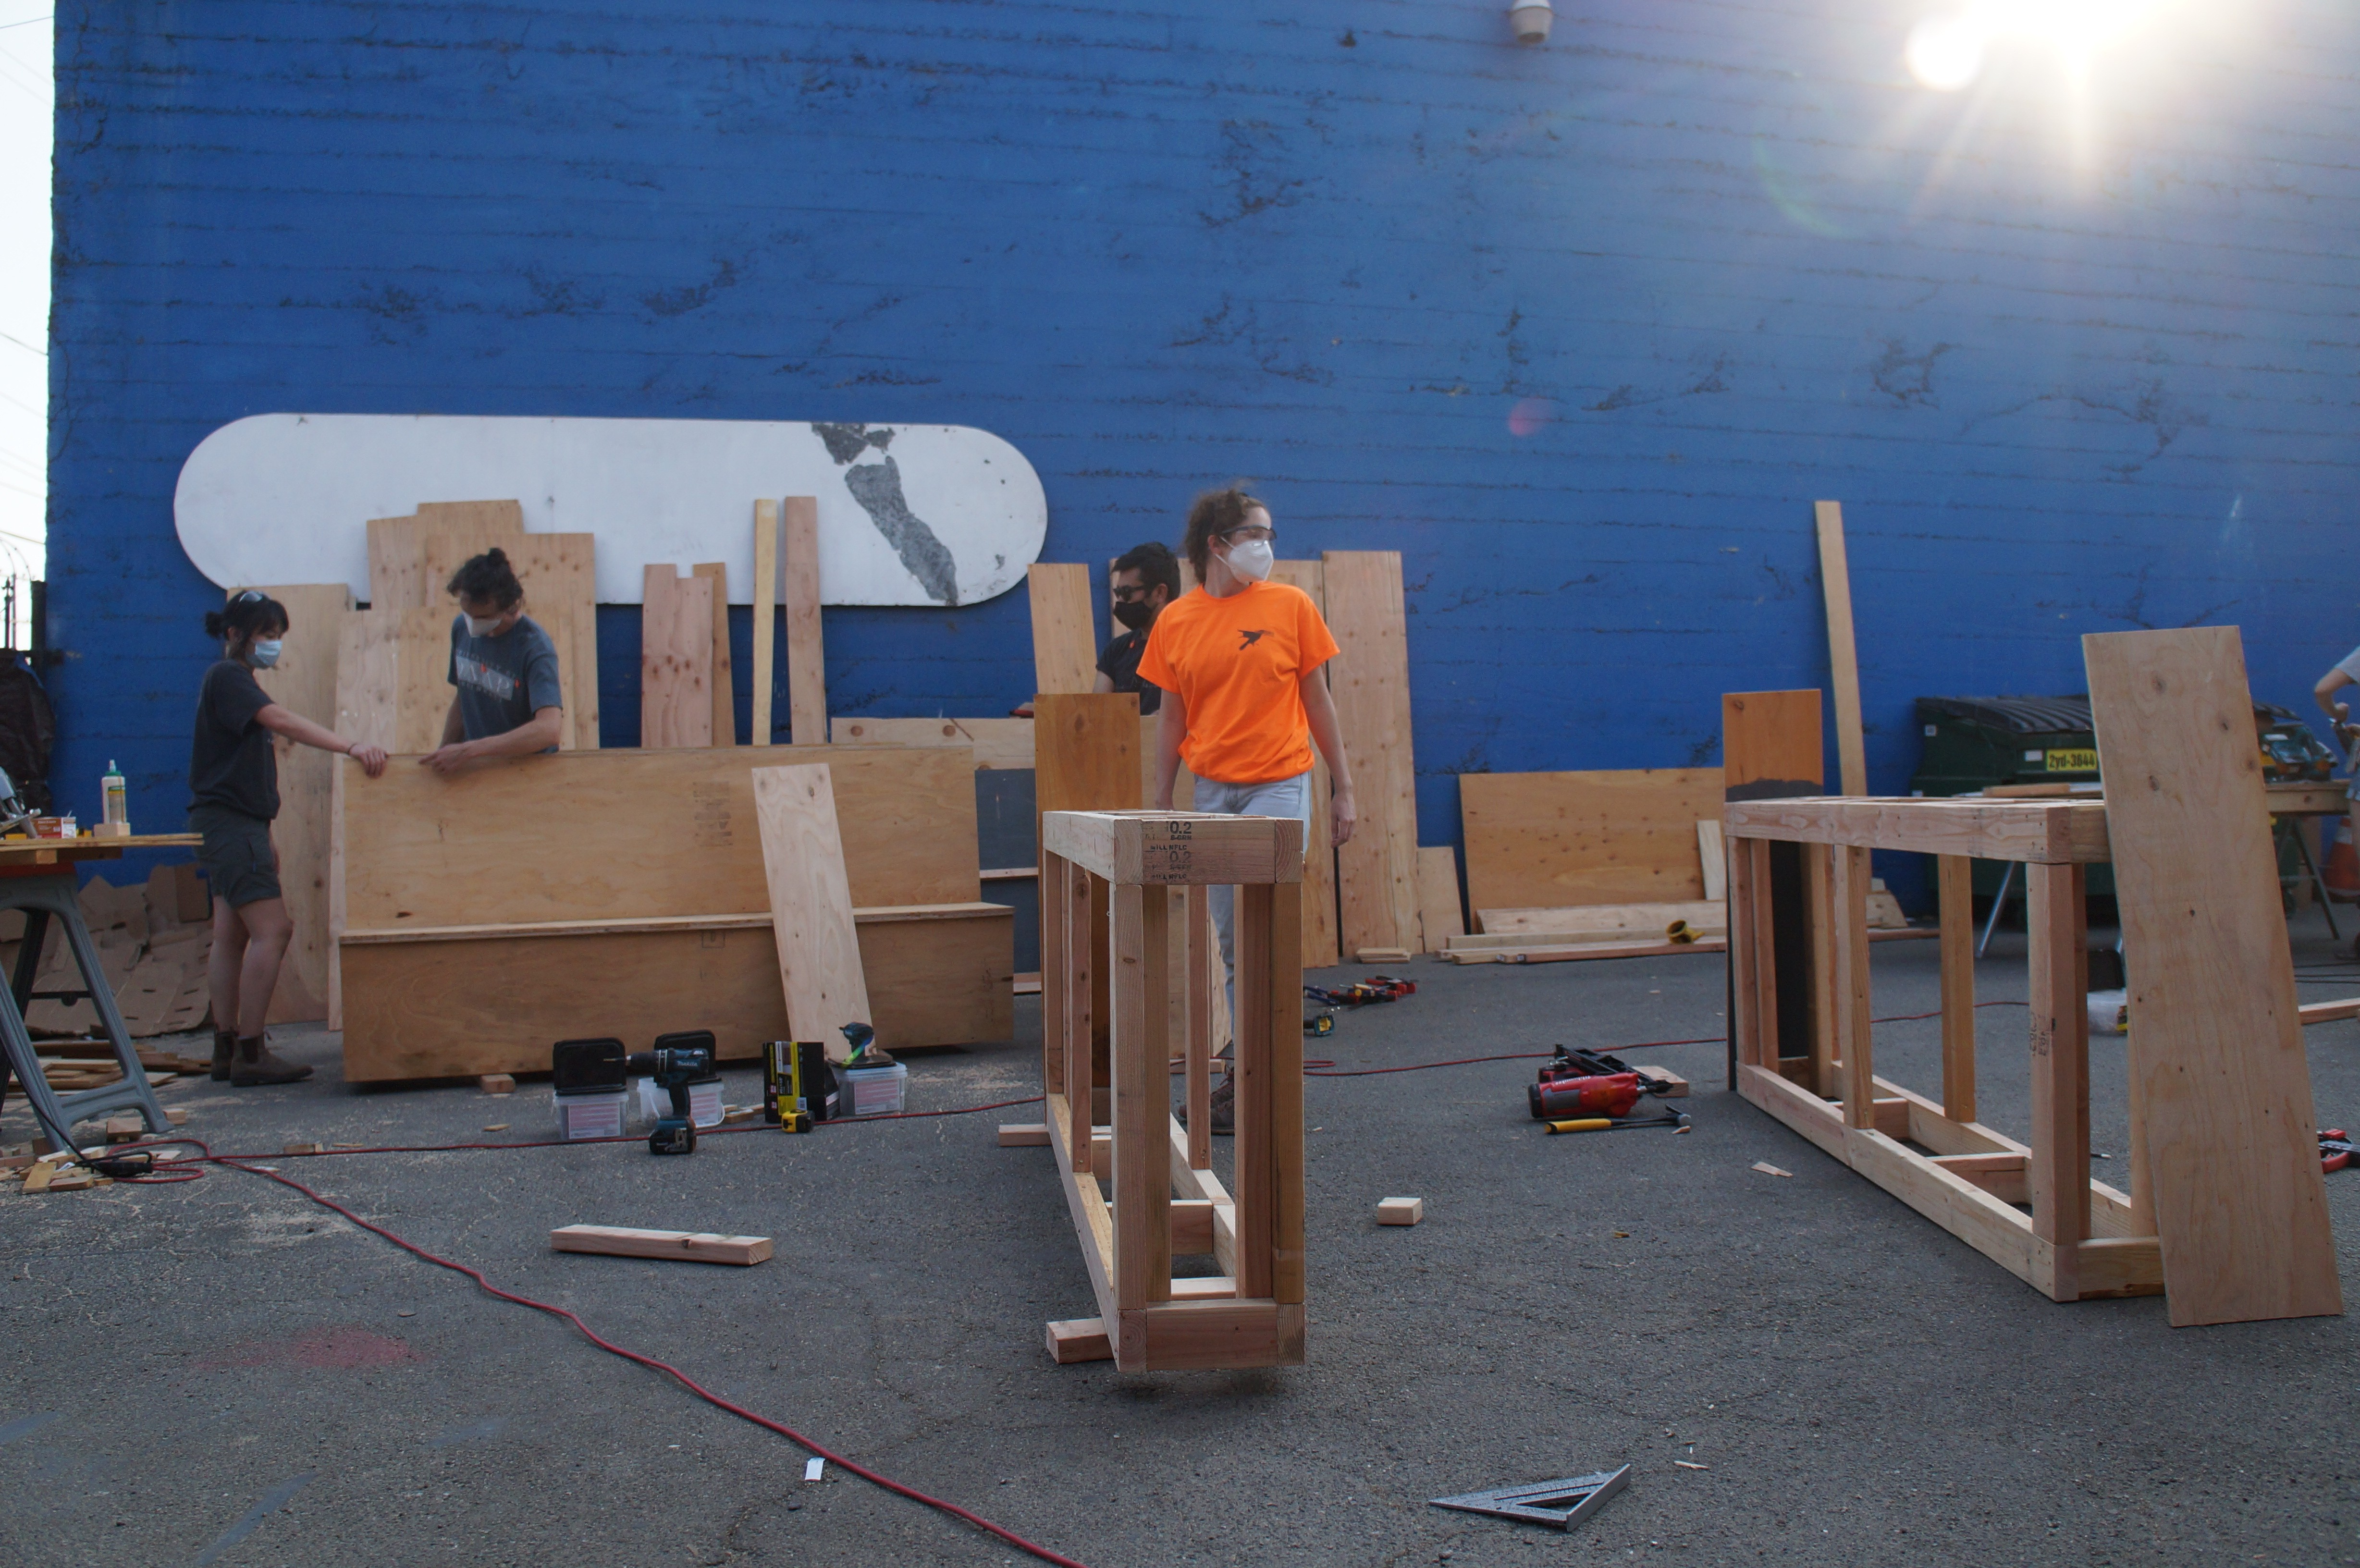 UCB Architecture grads build parklets for La Frontera - OAKLAND INDIE ALLIANCE